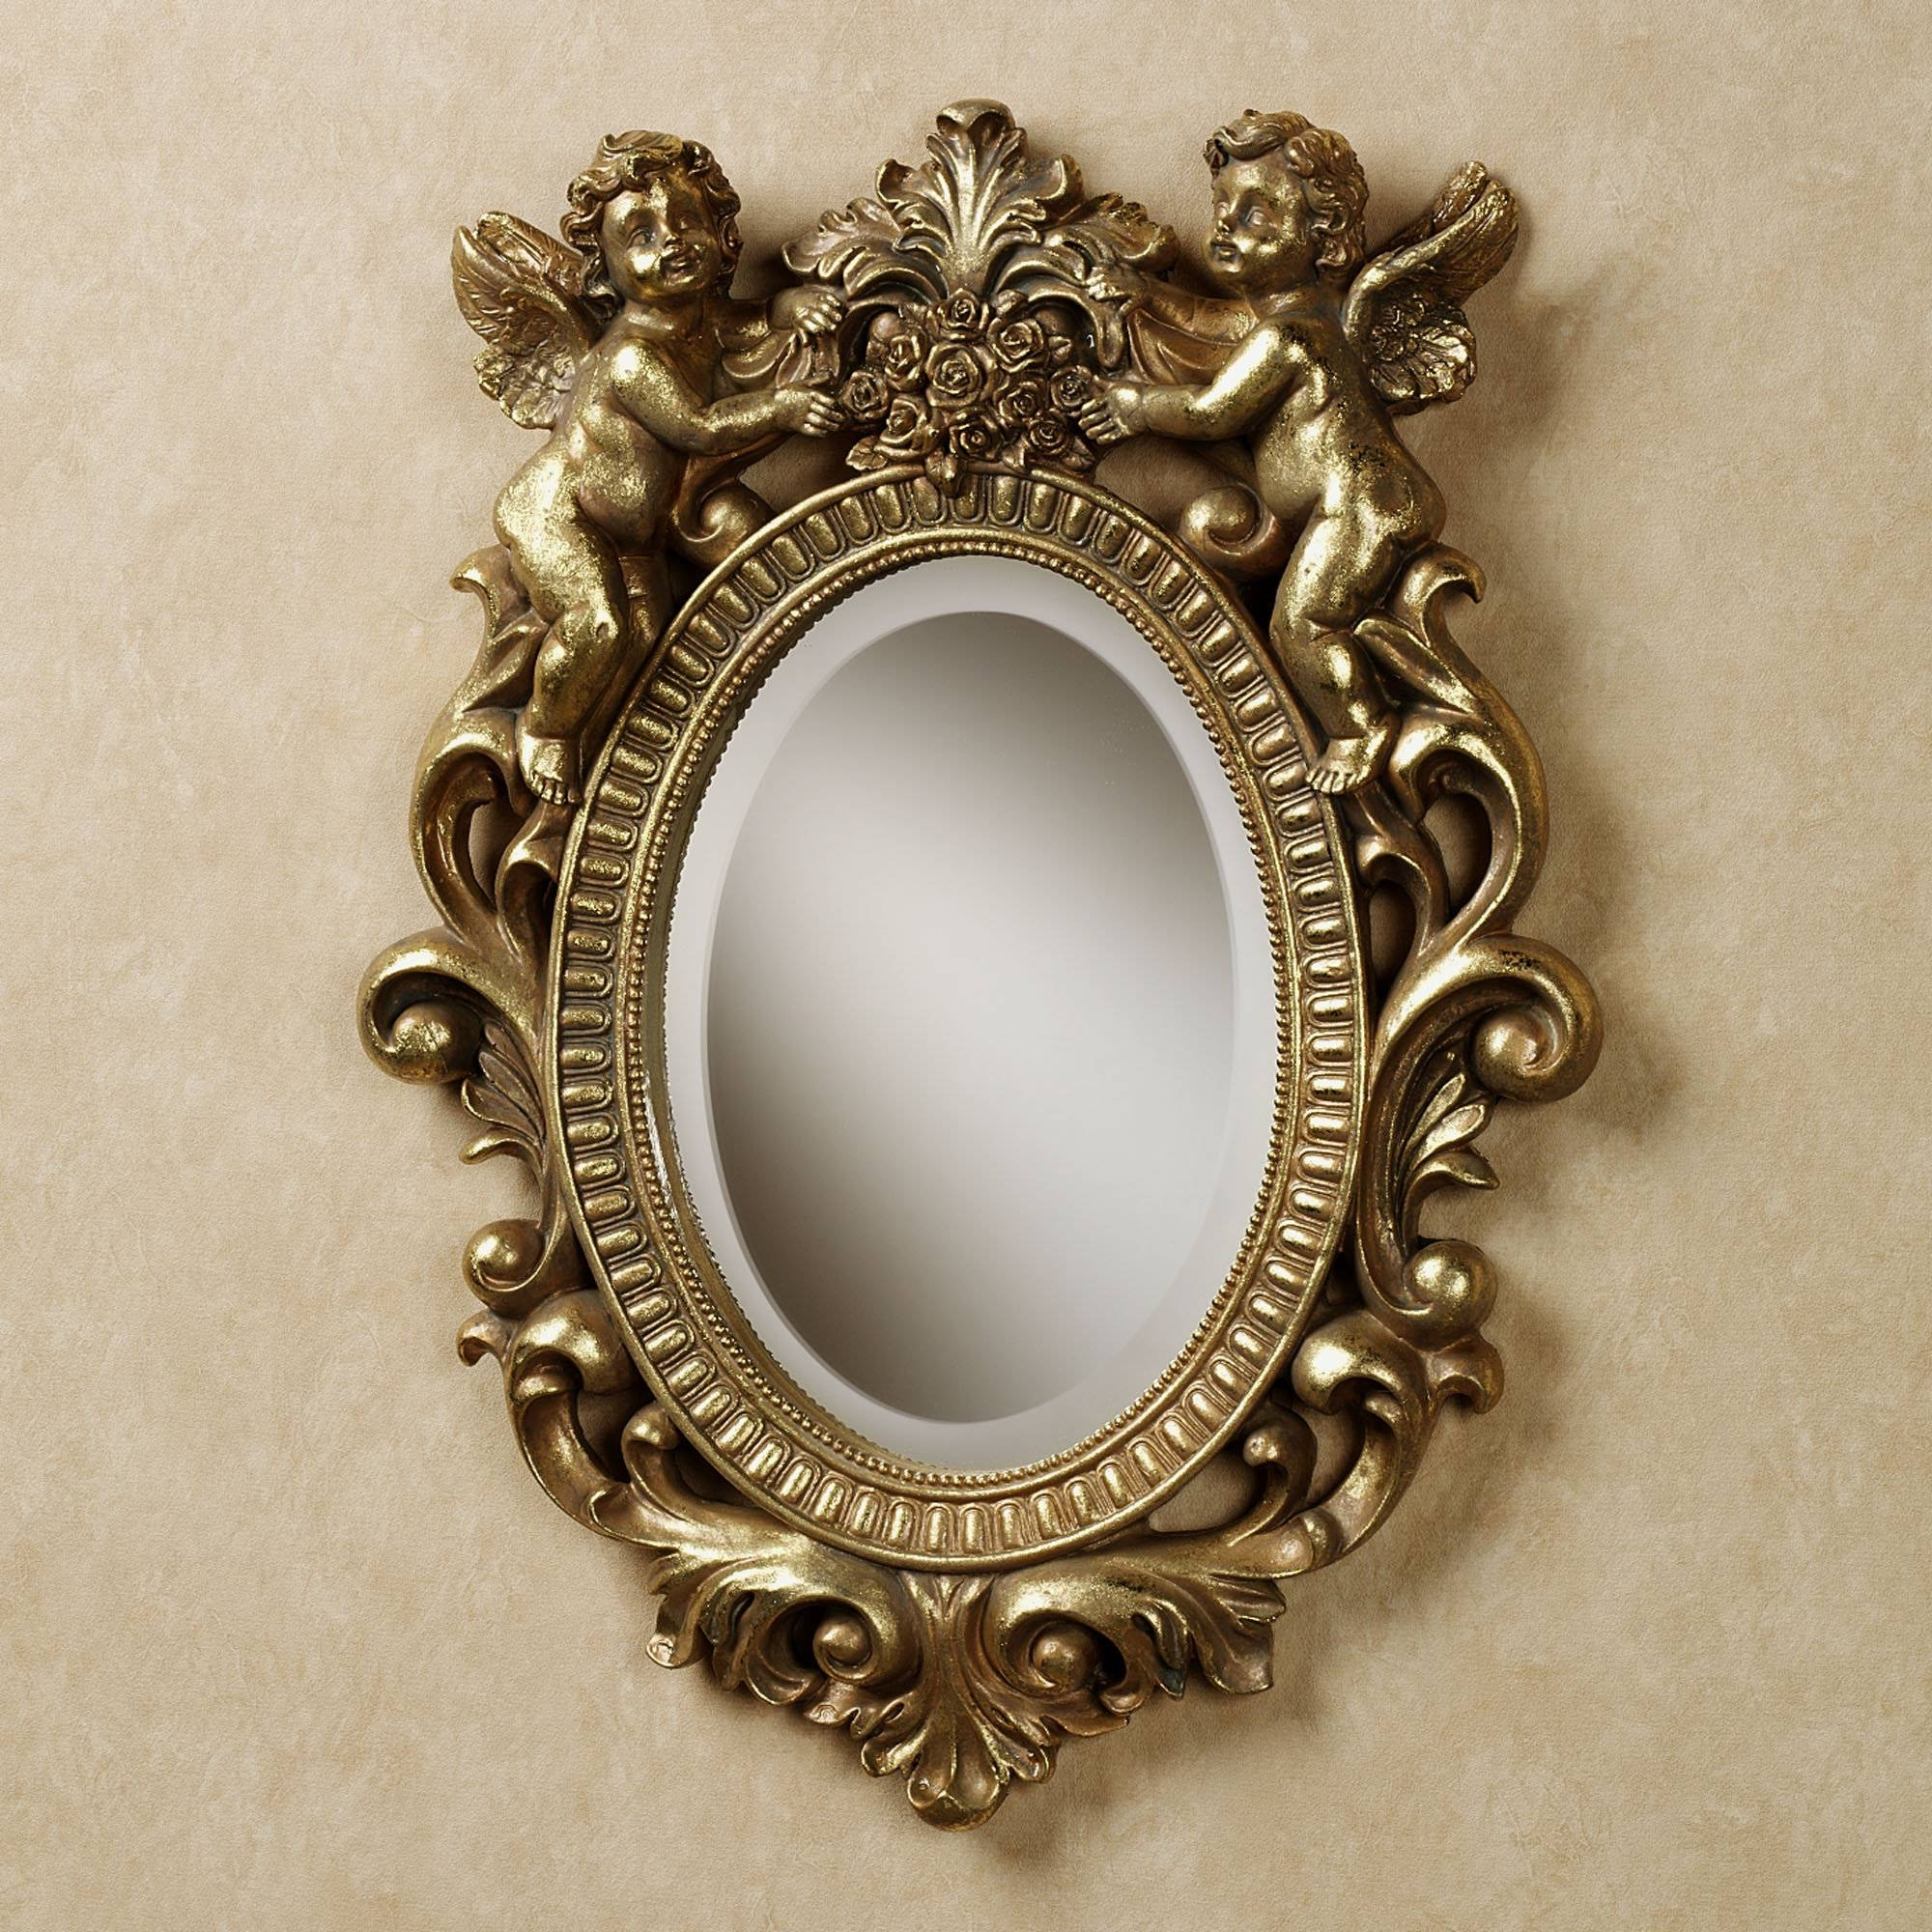 Home Decor: Antique Wall Mirror,antique Mirror,wall Mirrordecor ???? Within Old Fashioned Mirrors (View 13 of 25)